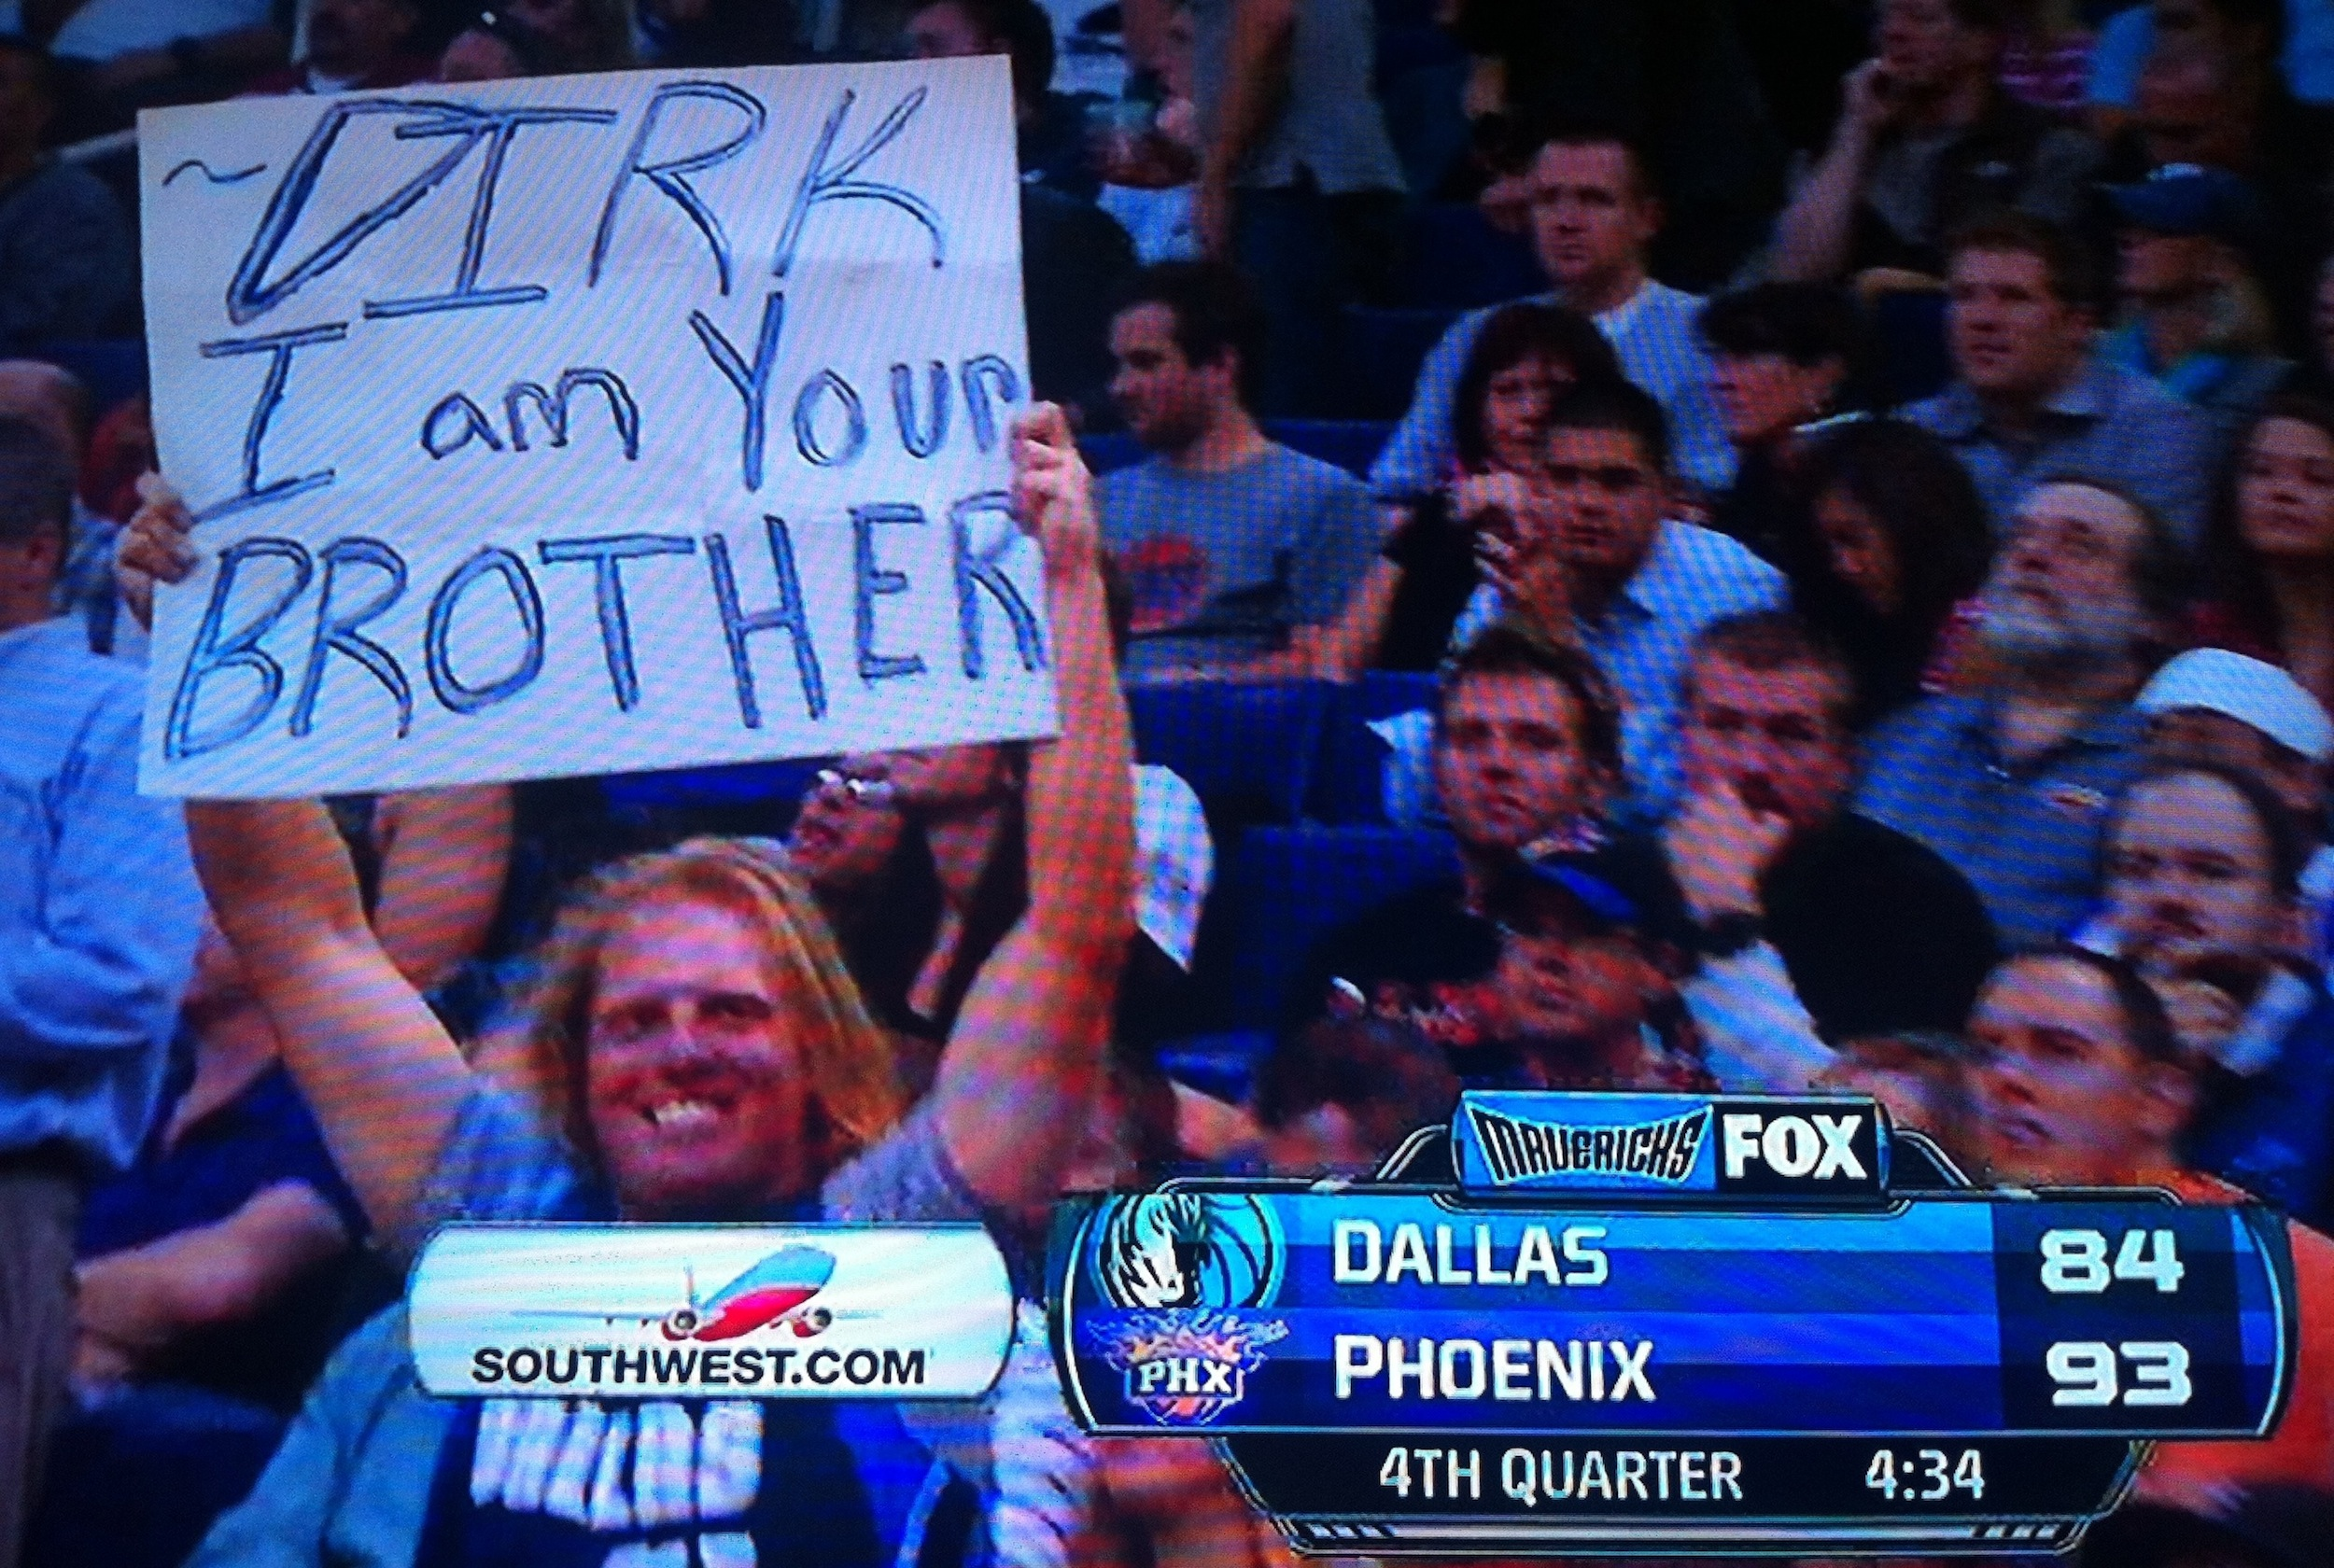 What If Dirk Nowitzki Was Missing A Chromosome And Lived In Pho…